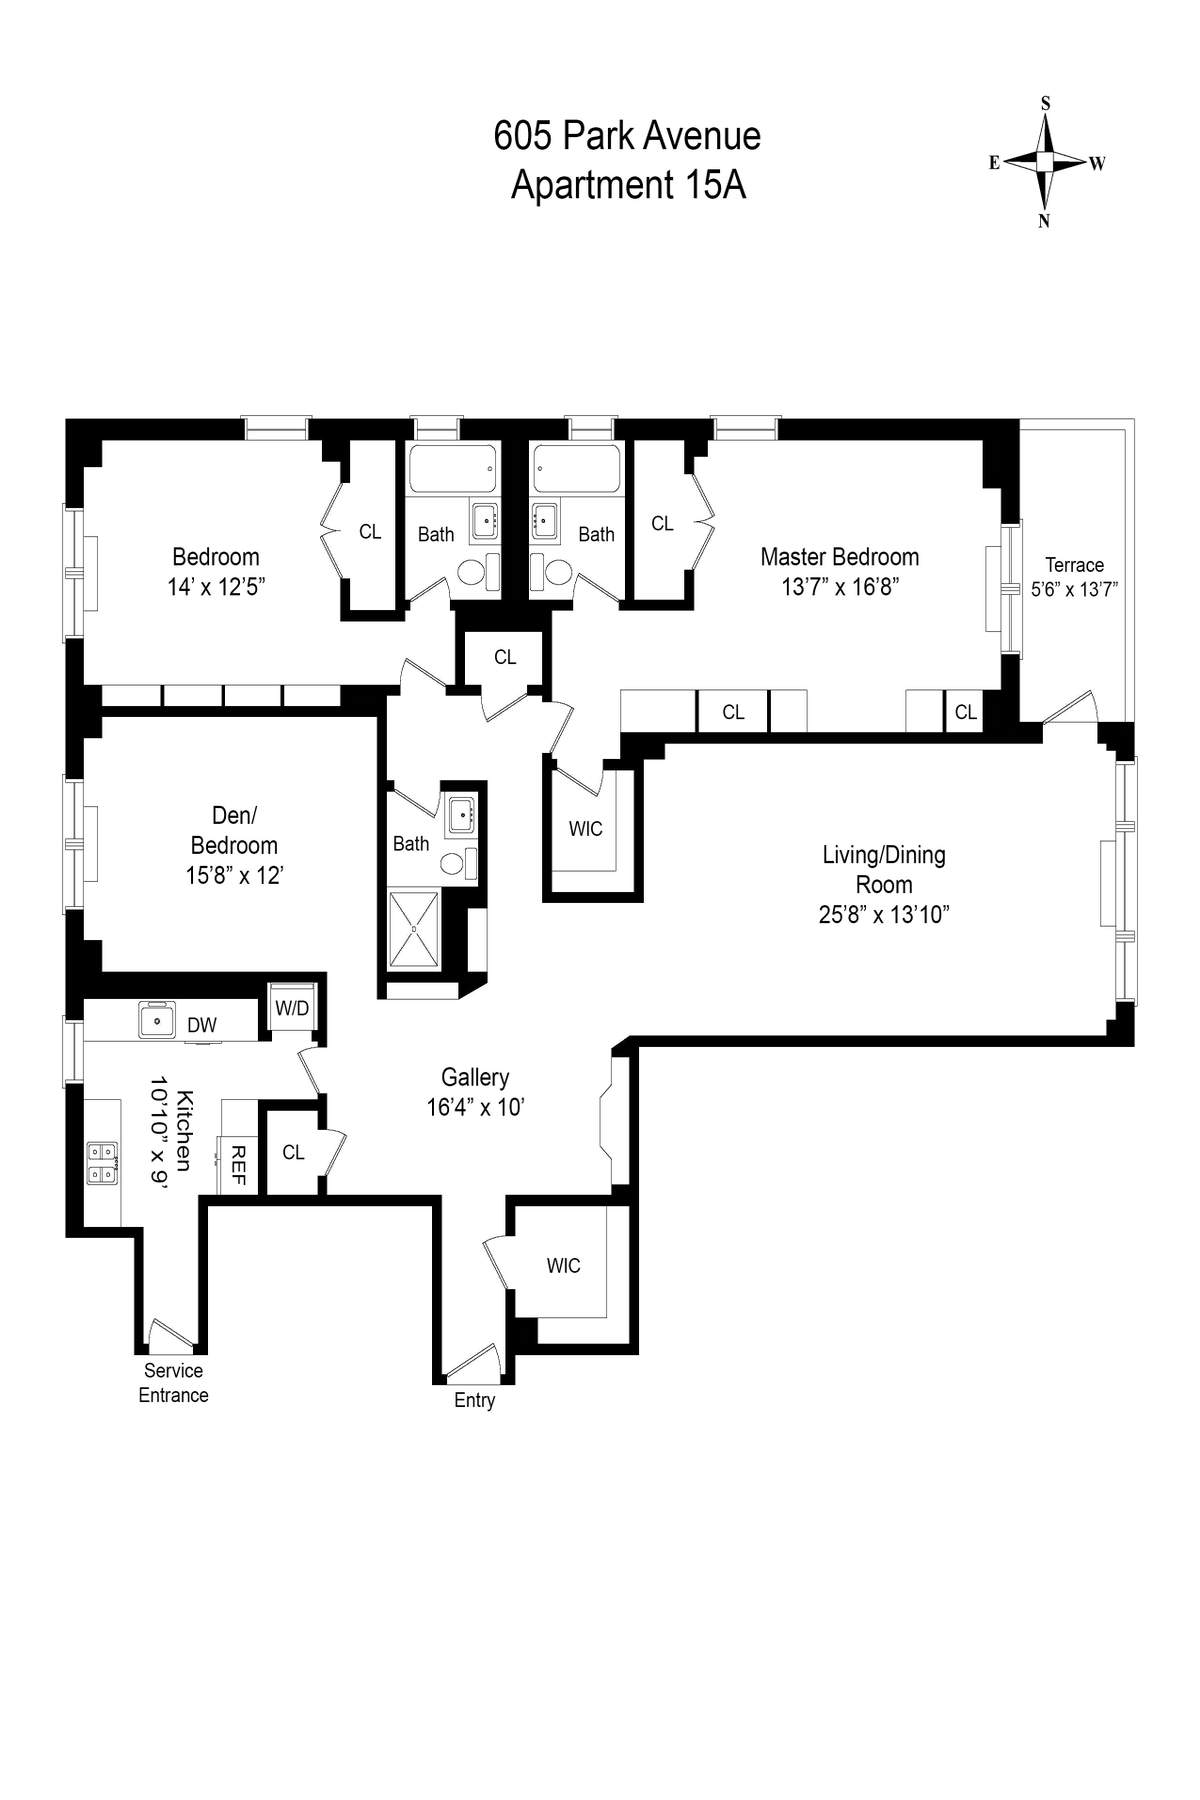 Co-op for Sale at 605 Park Avenue Apt 15A 605 Park Avenue Apt 15A New York, New York 10065 United States